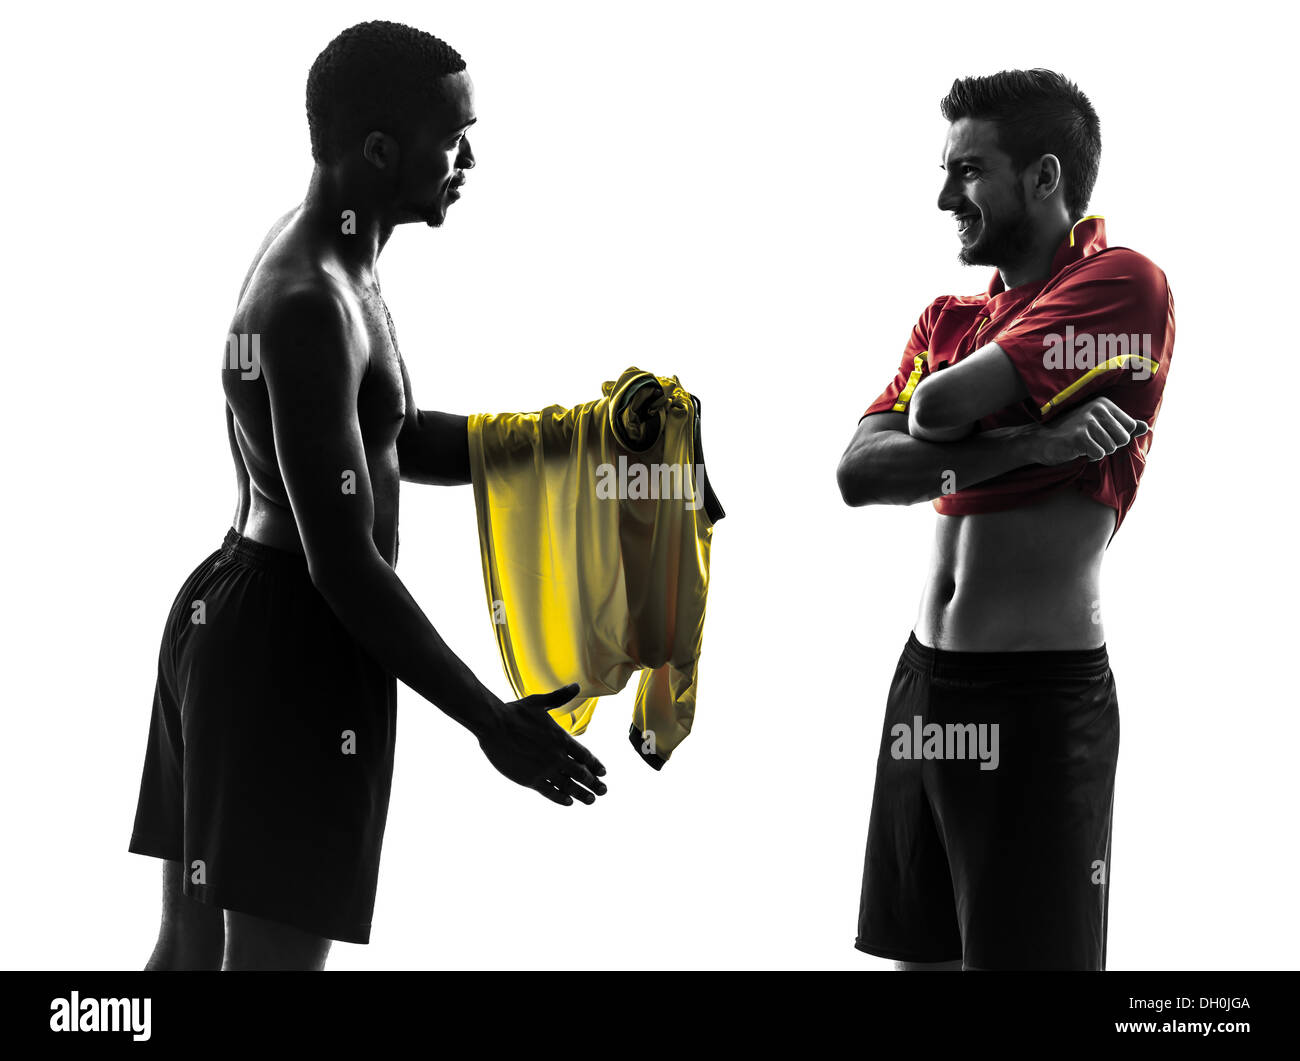 two men soccer player playing football competition exchanging jersey in silhouette on white background - Stock Image